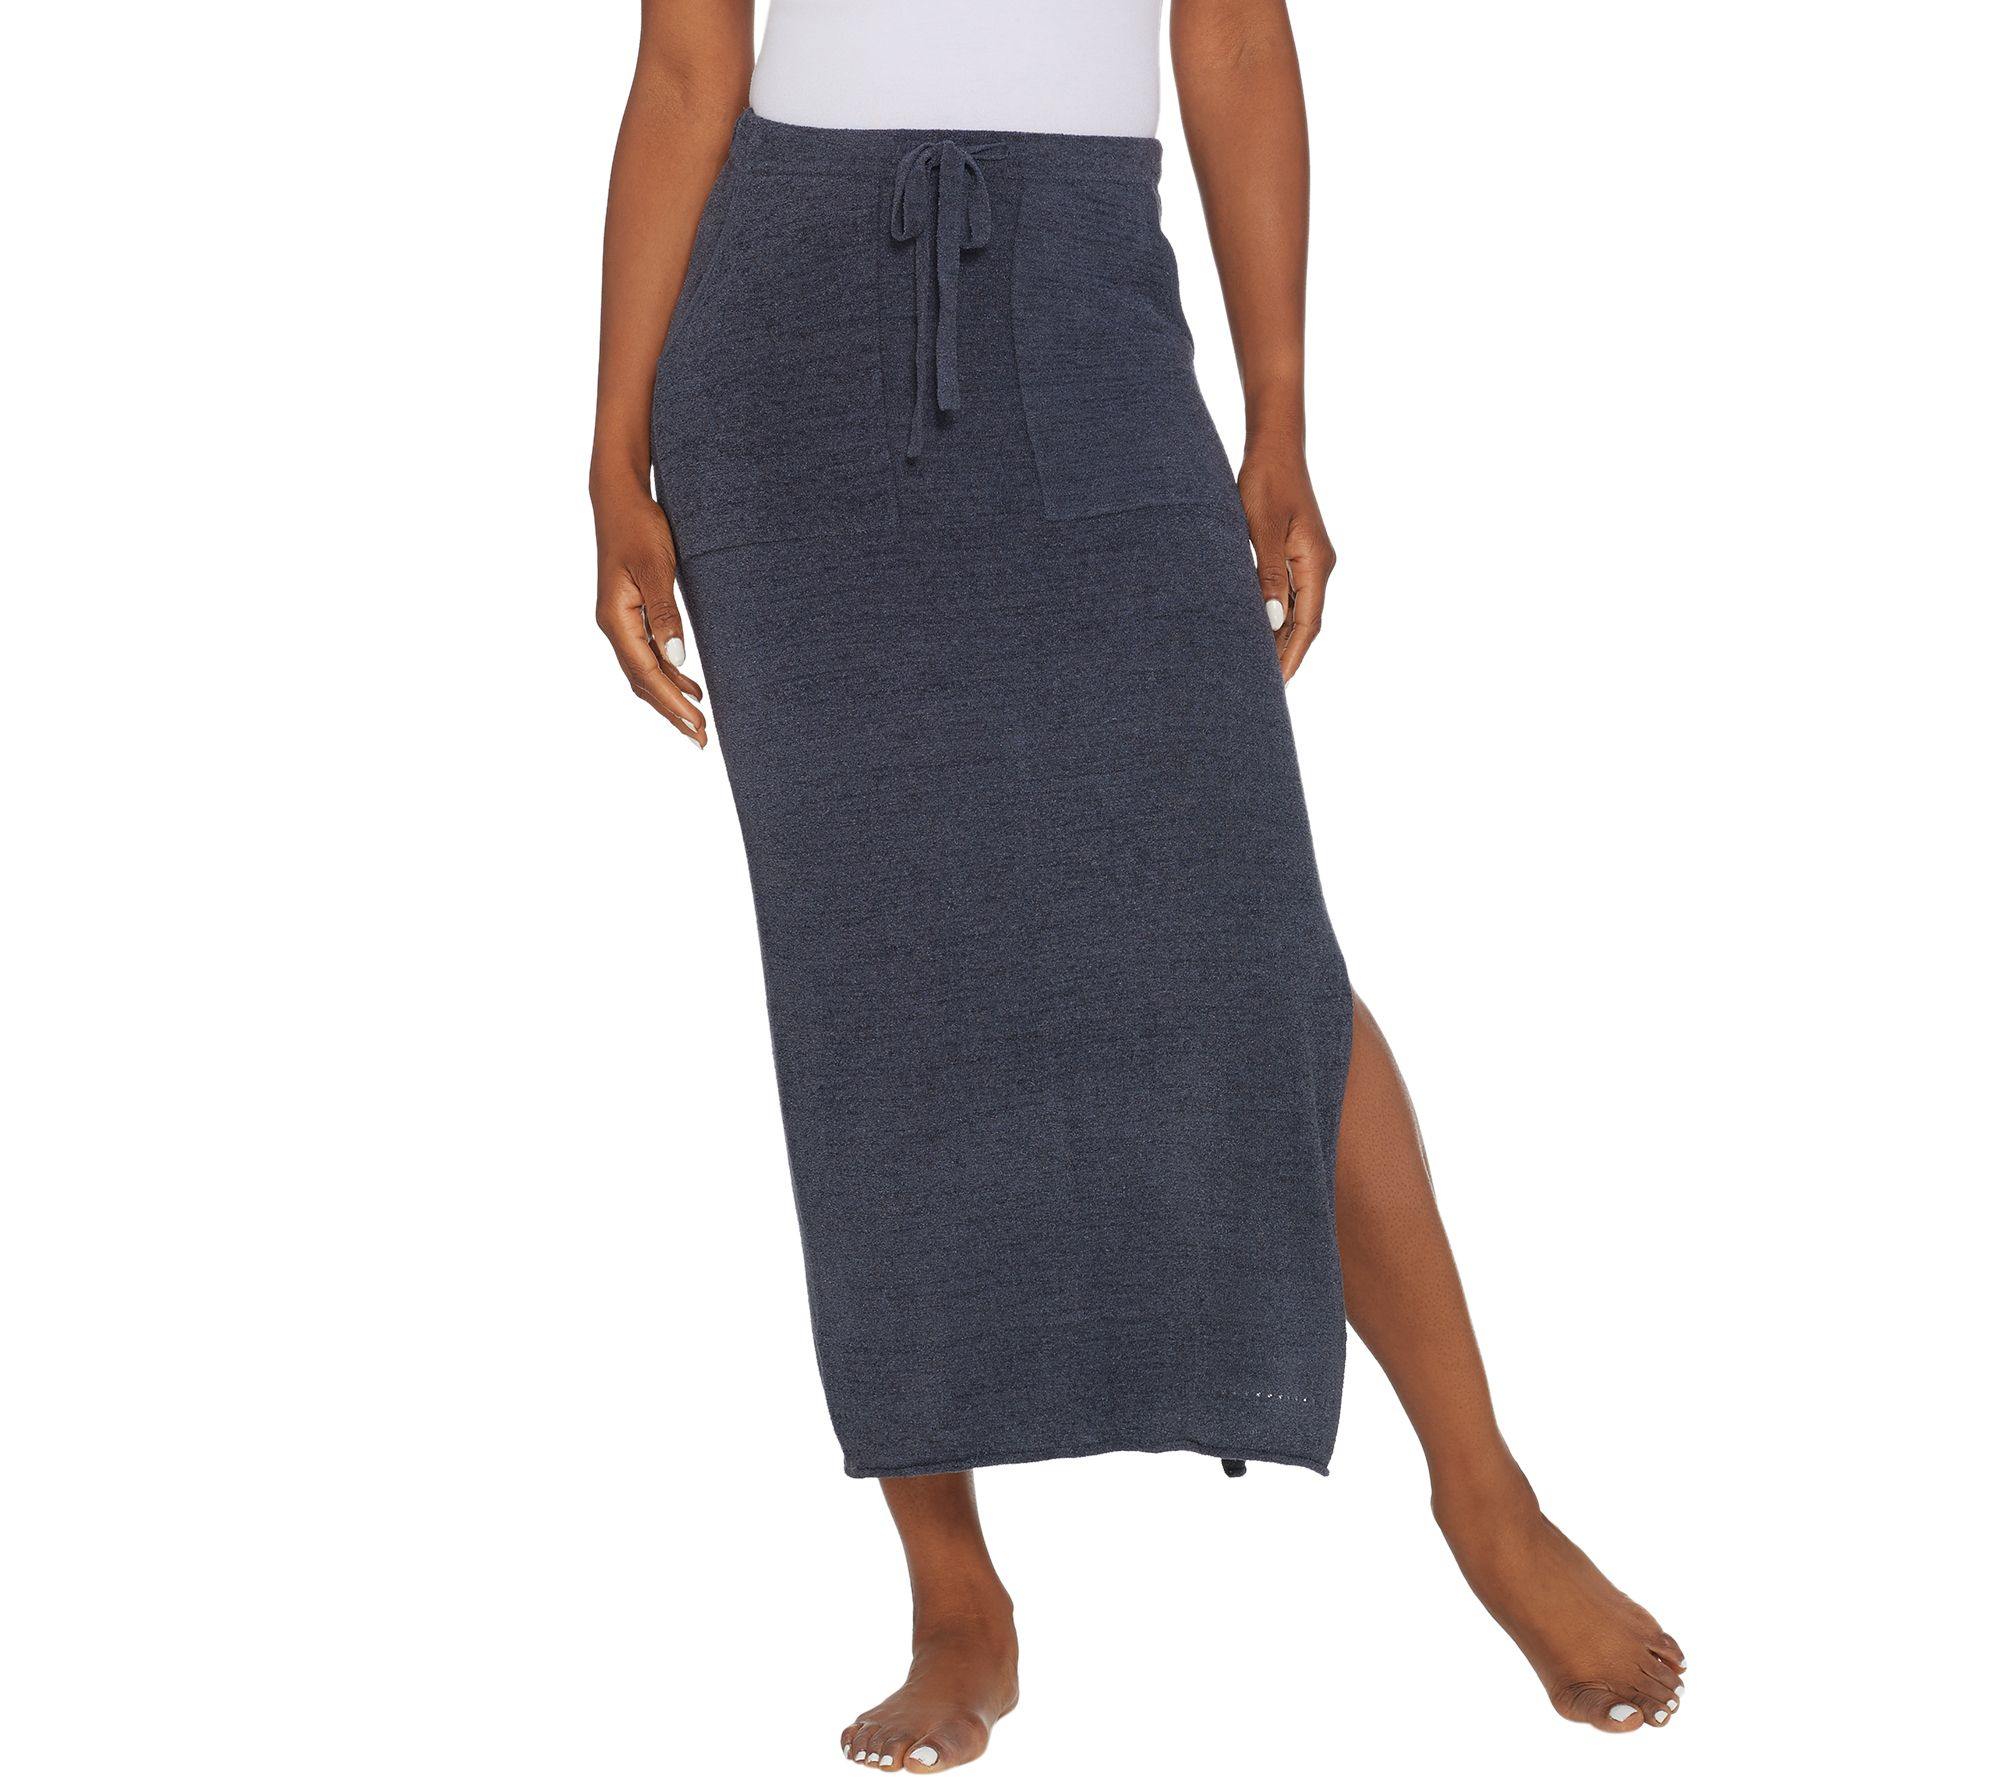 c89a53aff2 Barefoot Dreams Cozychic Ultra Lite Maxi Skirt - Page 1 — QVC.com